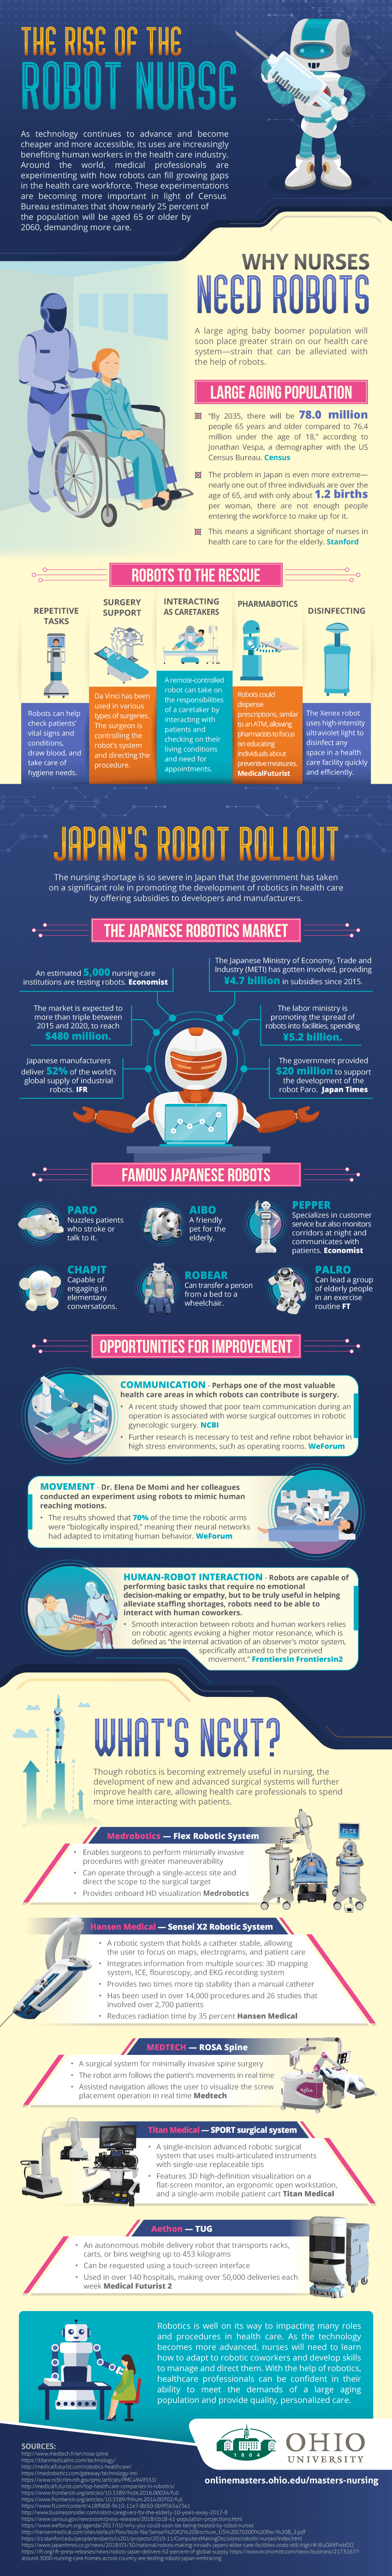 The New Face of Healthcare Professionals: Rise of the Robot Nurse - Infographic